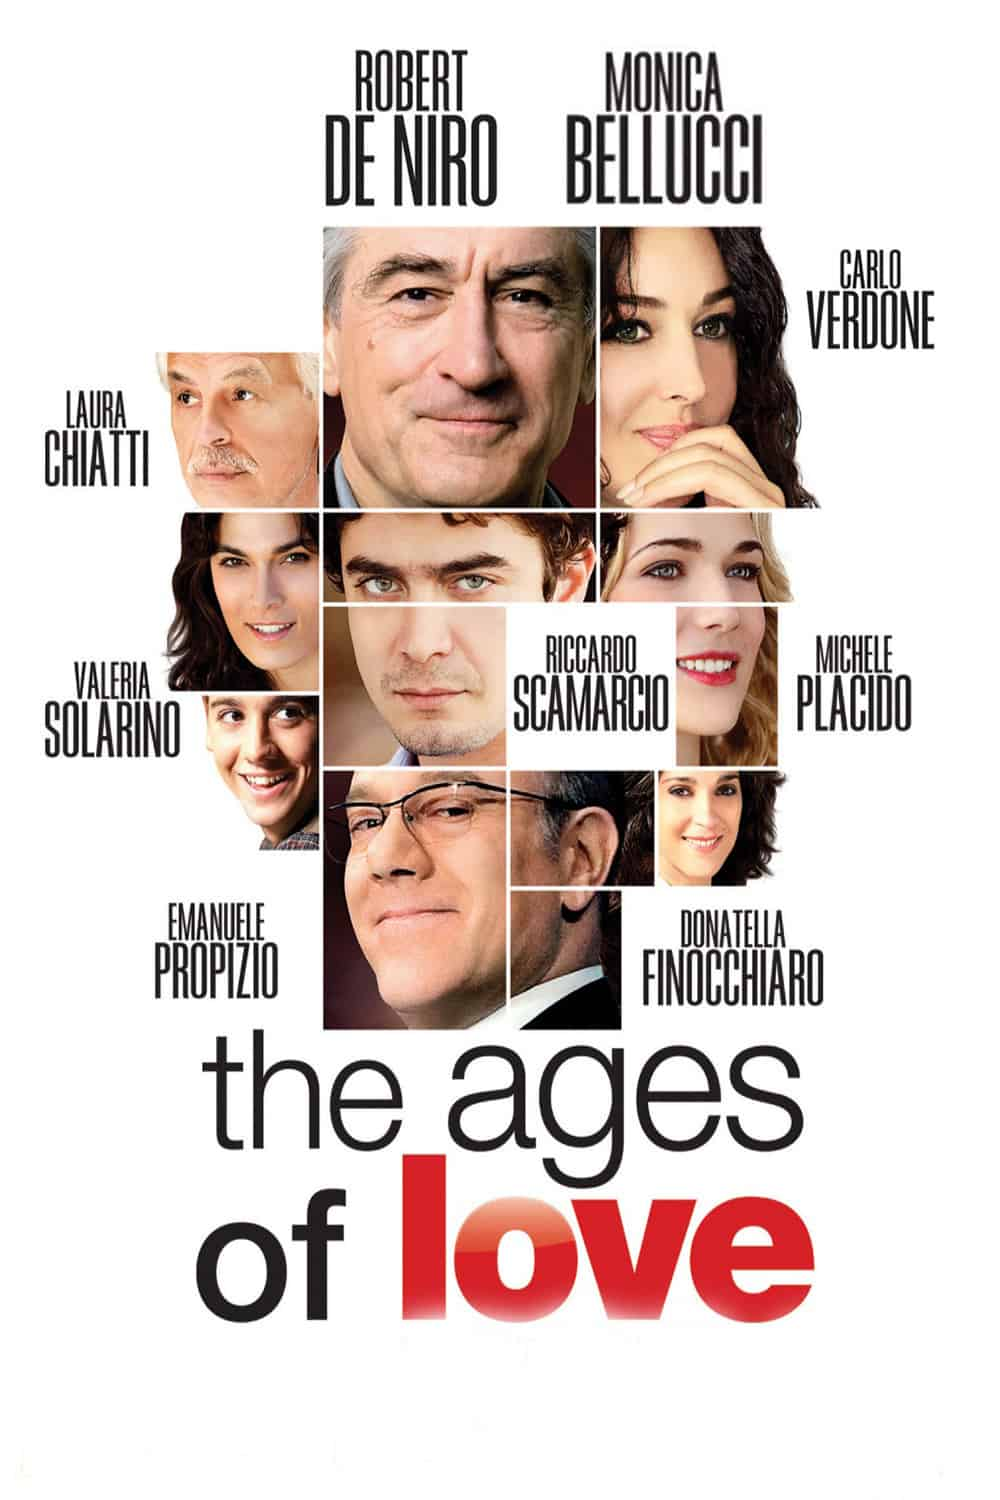 The Ages of Love, 2011